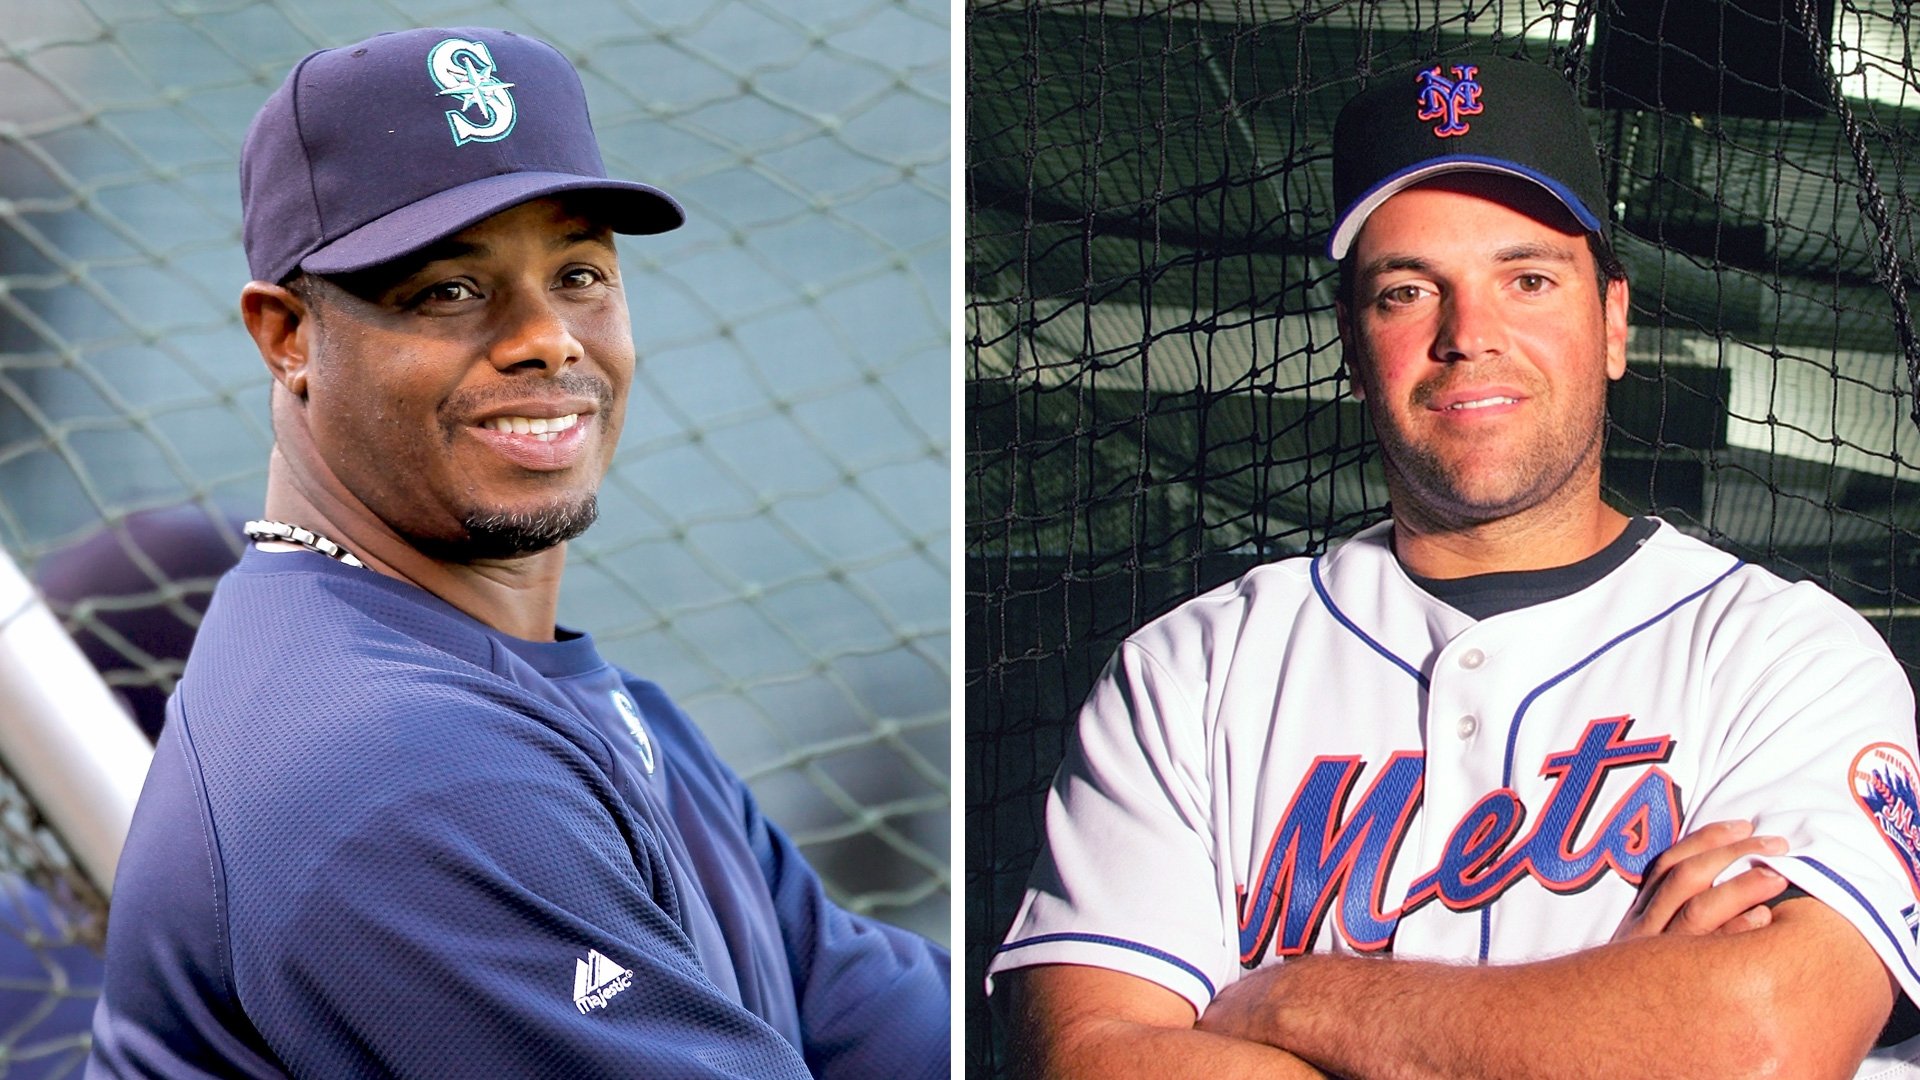 Ken Griffey Jr. and Mike Piazza